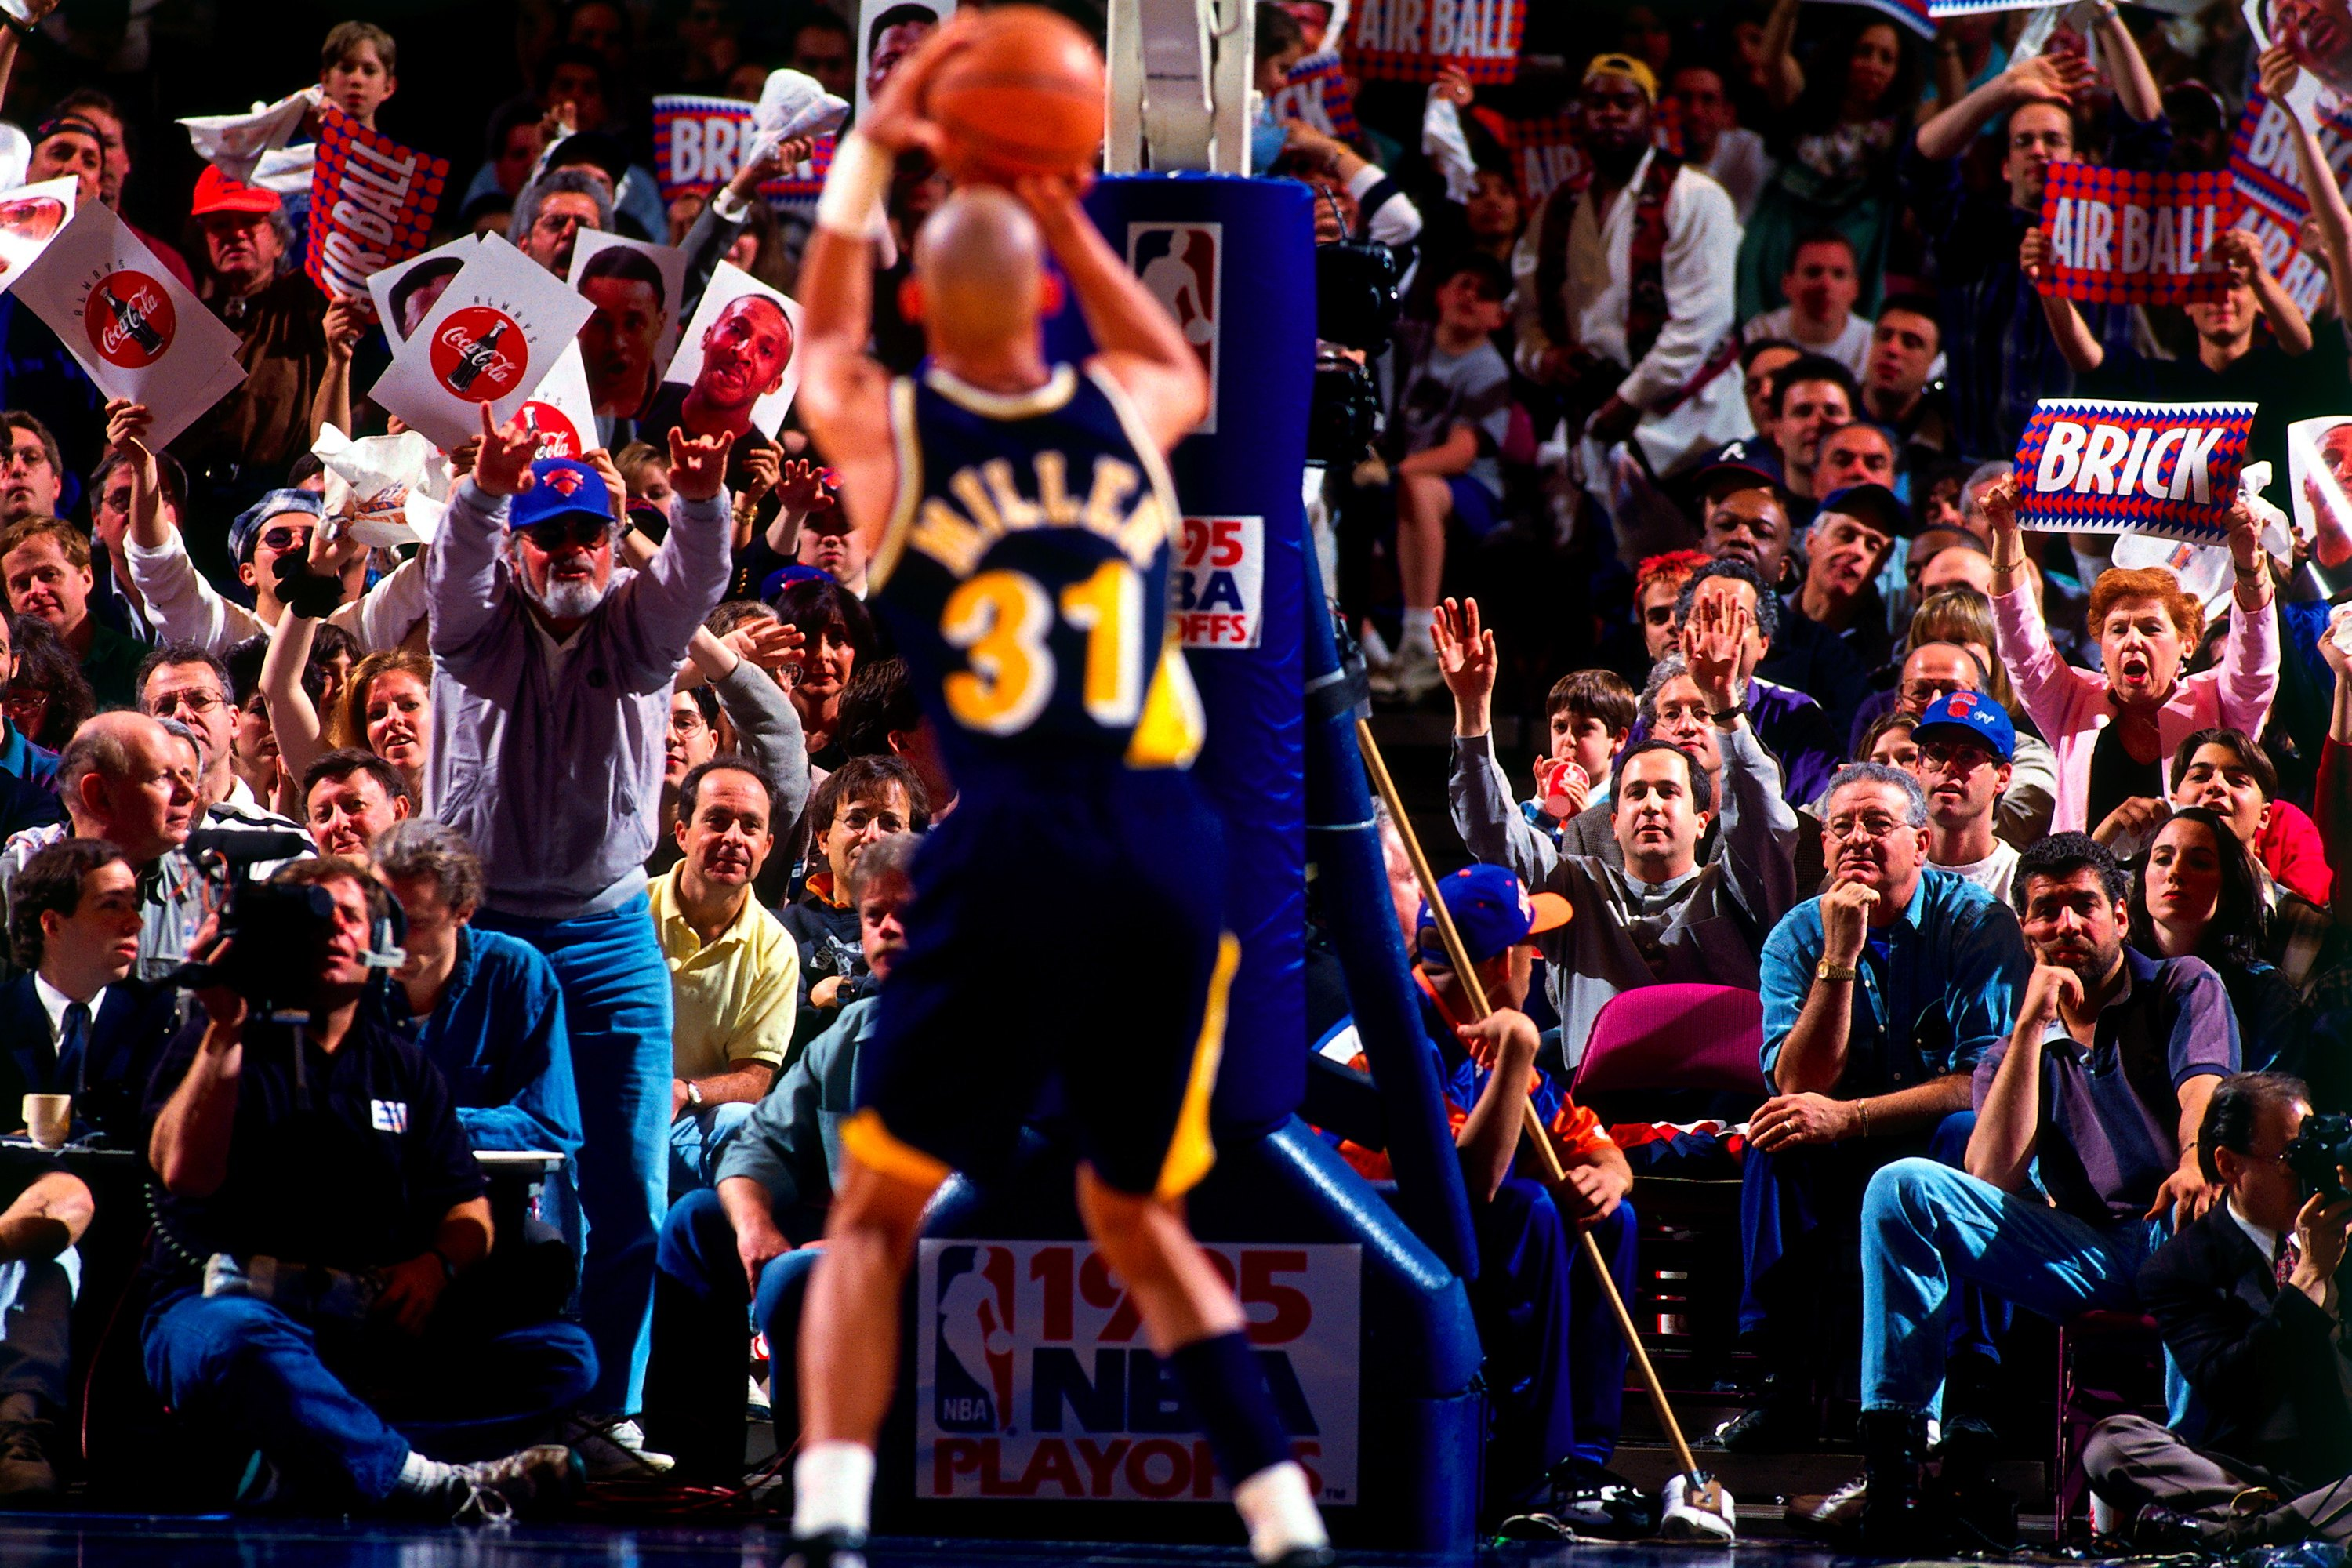 Indiana Pacers v New York Knicks, Game 1